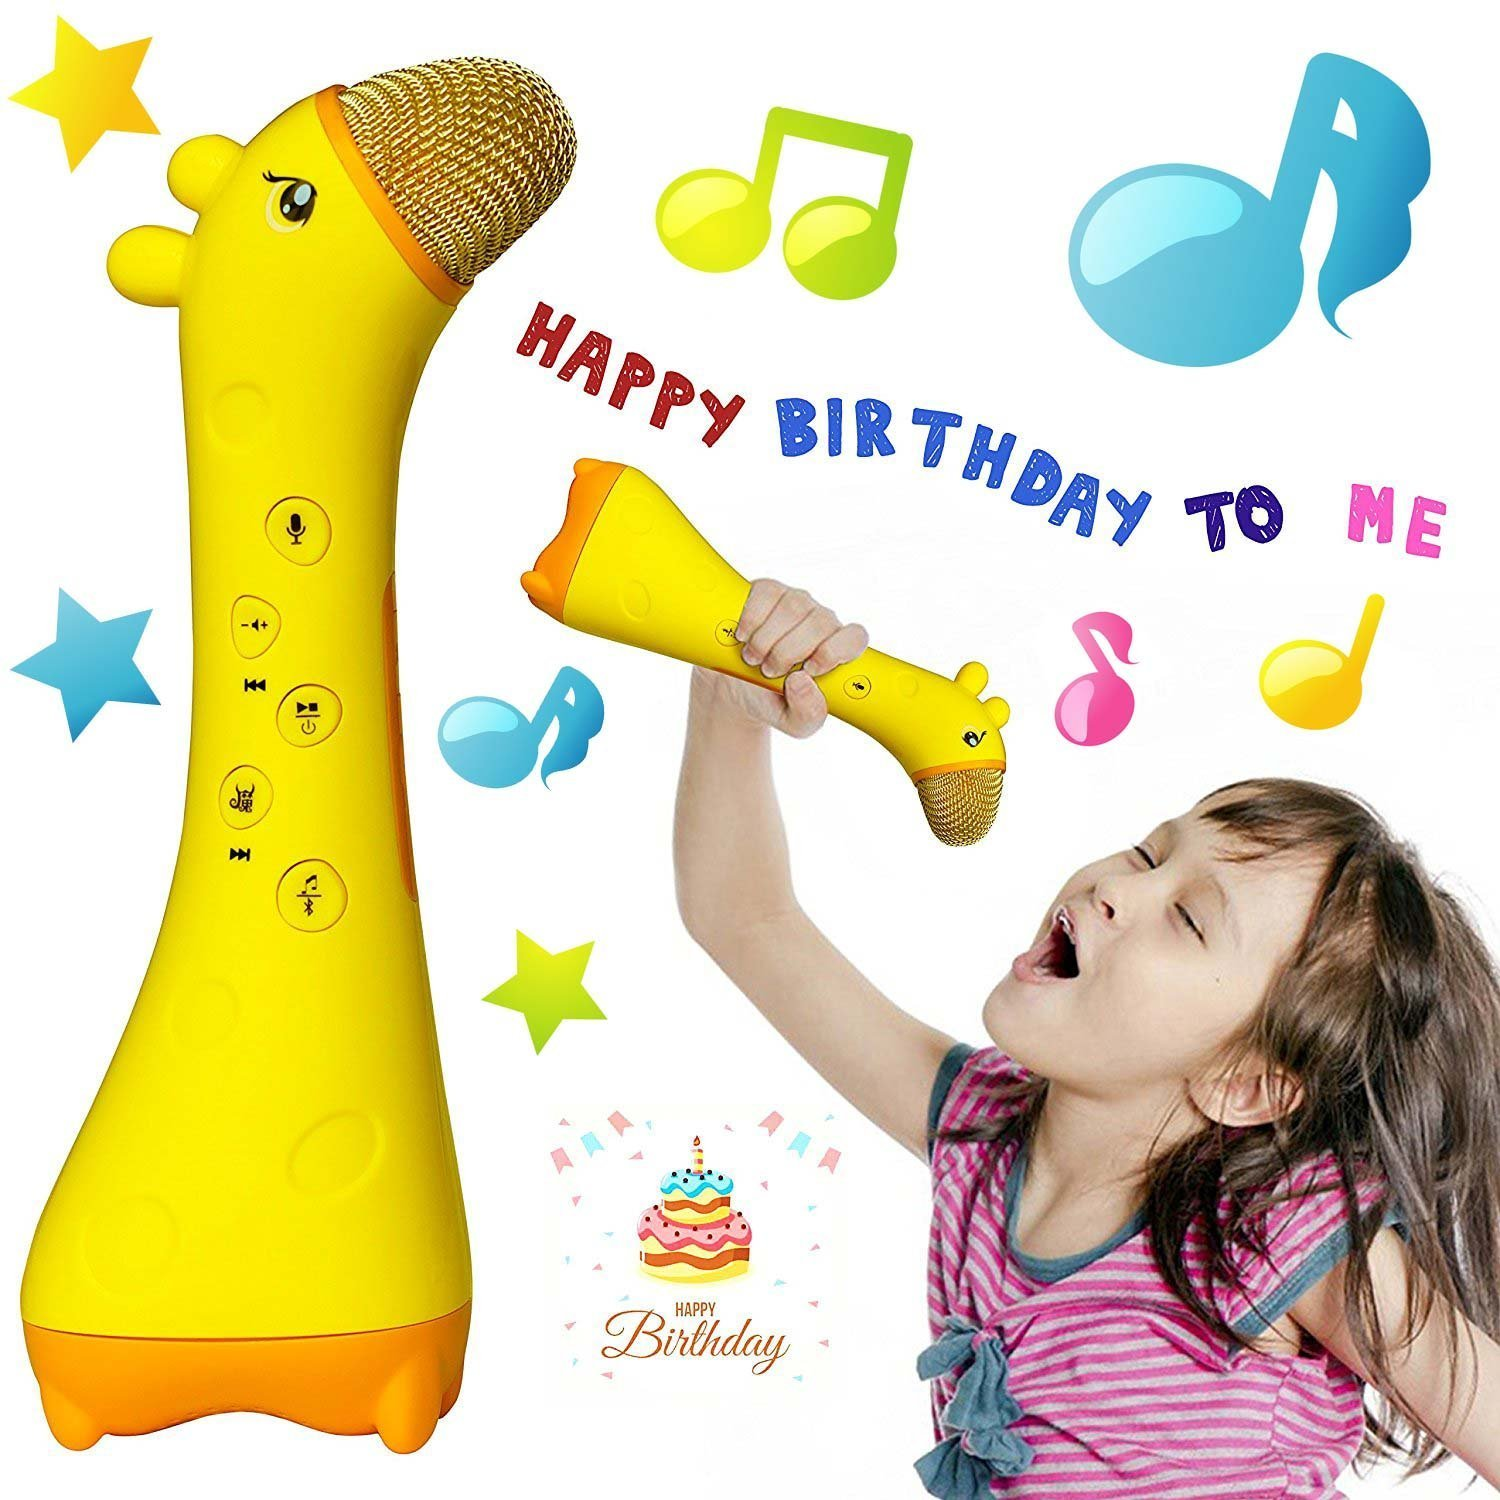 Tikeda Magic Kids microphone Built-in Songs Best 2017 Wireless bluetooth karaoke Toy for Children 0 - 12 year old to develop intelligence cool birthday/Christmas gifts presents– Yellow giraffe